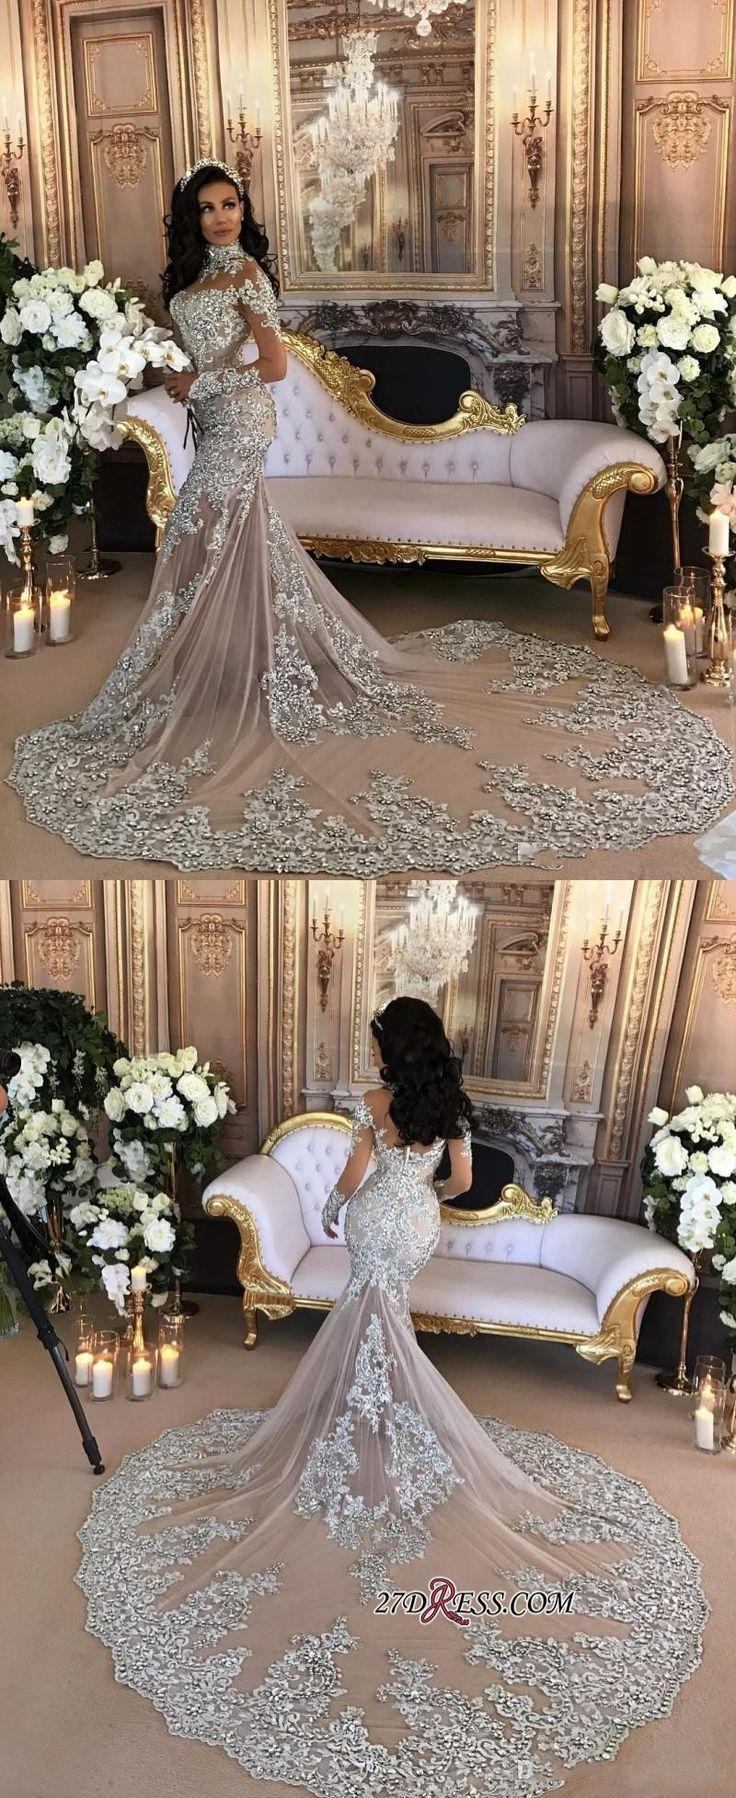 Dress - ❤2018 Hottest Wedding Gowns ❤ #2785830 - Weddbook